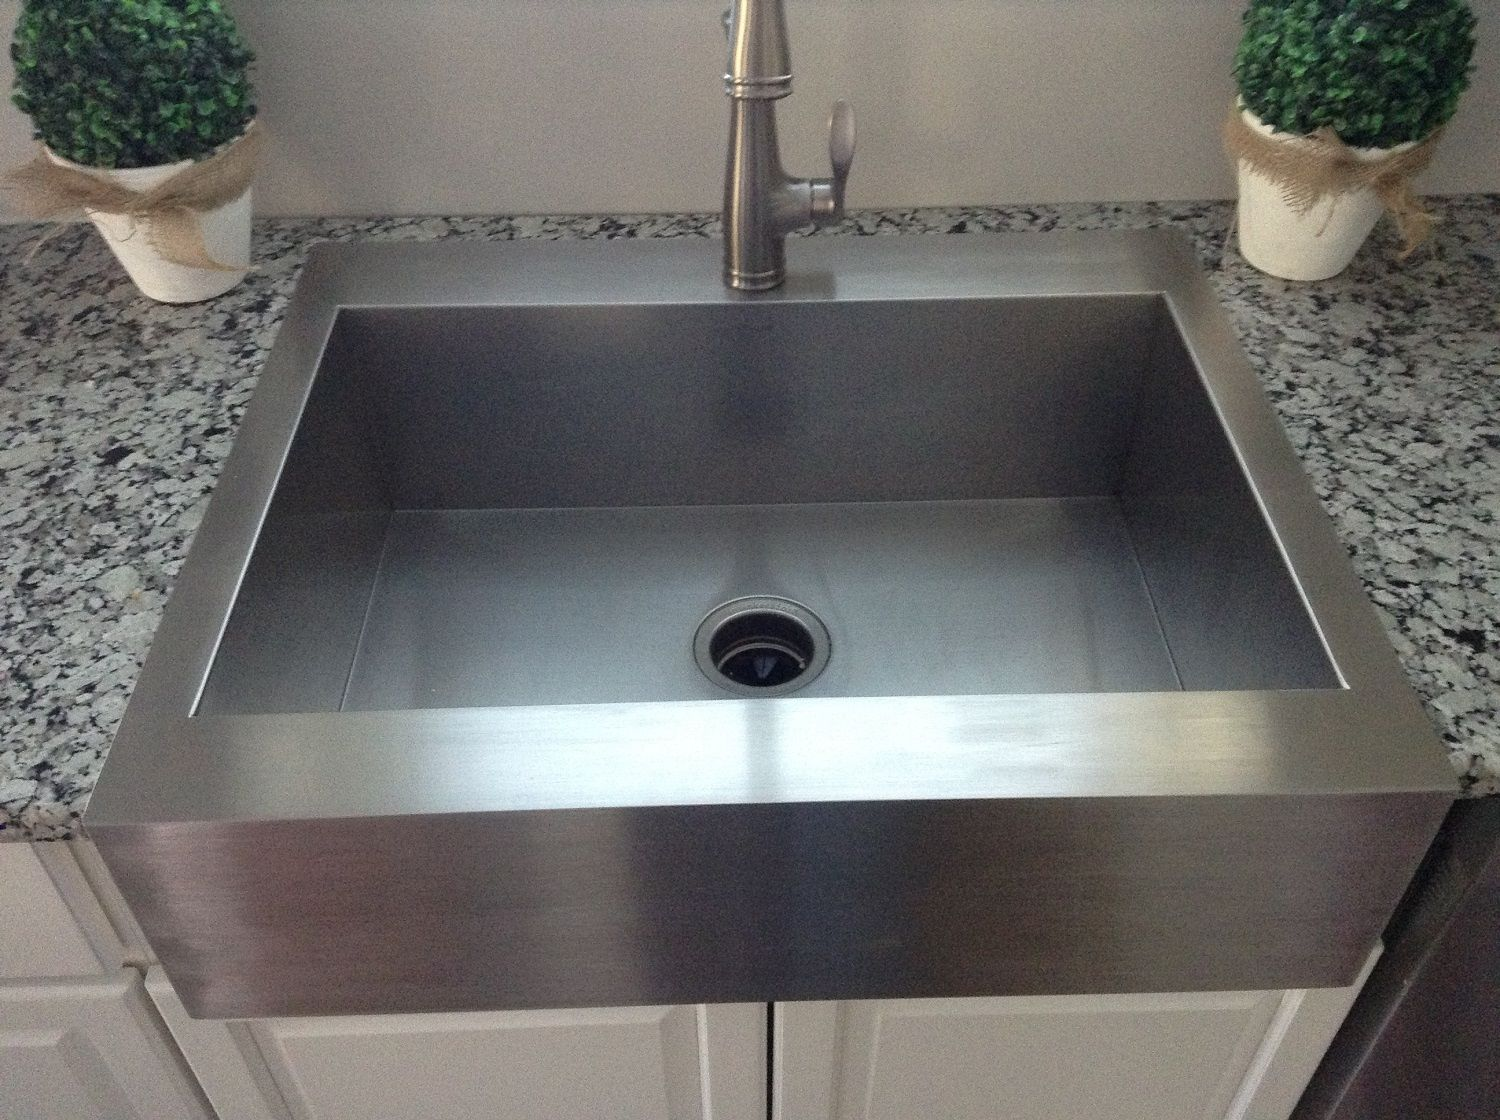 55 Sink For Granite Countertop Backsplash For Kitchen Ideas Check More At Http Mattinglybrewing Stainless Steel Farmhouse Sink Top Mount Kitchen Sink Sink